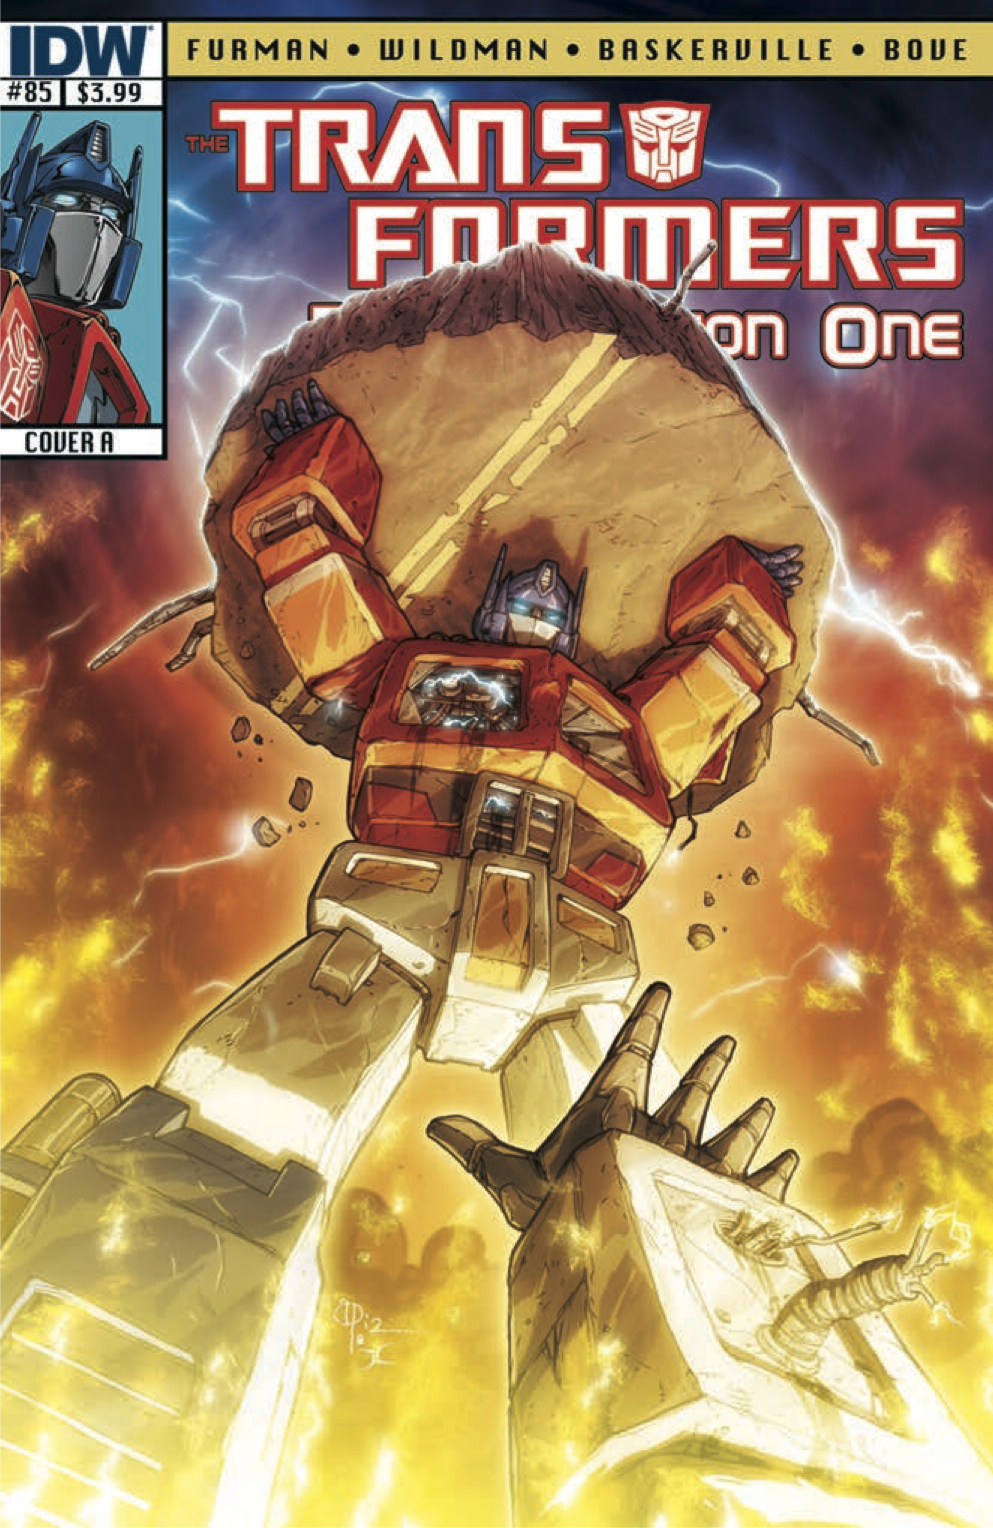 Transformers RegenerationOne 85 CvrA Weekly Comic Reviews 11/7